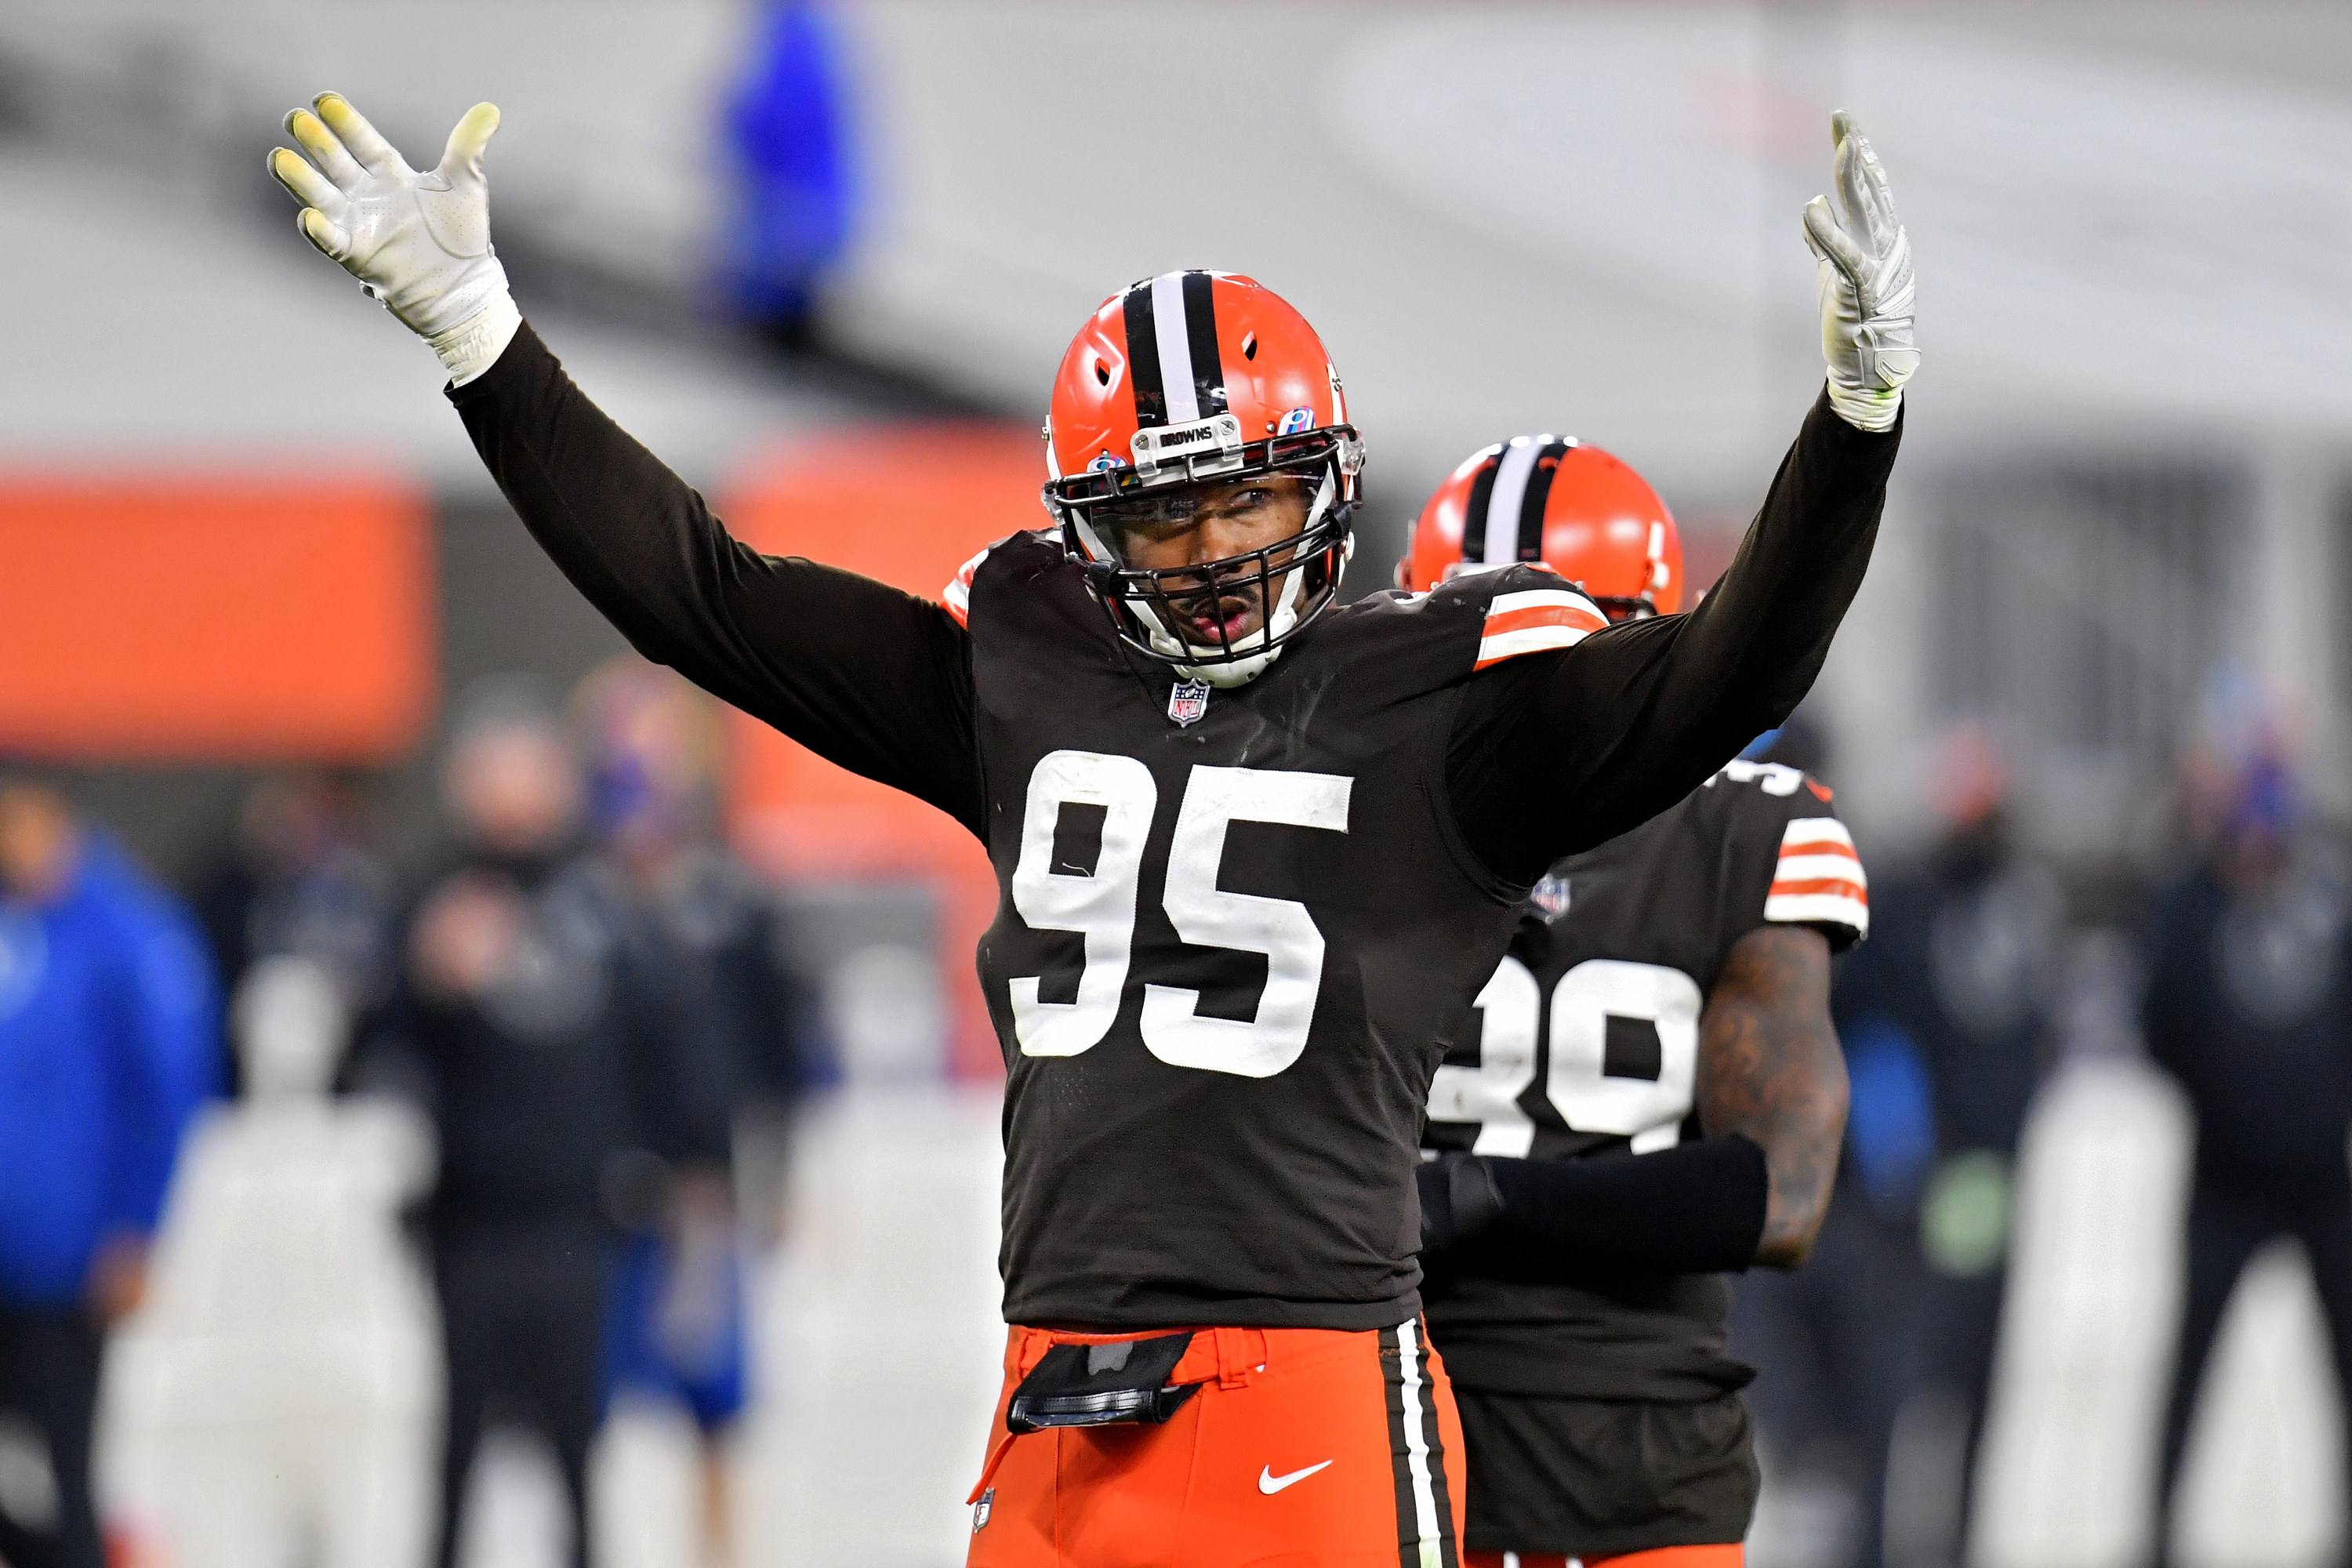 Browns uniforms brown jersey with orange helmet and white lettering